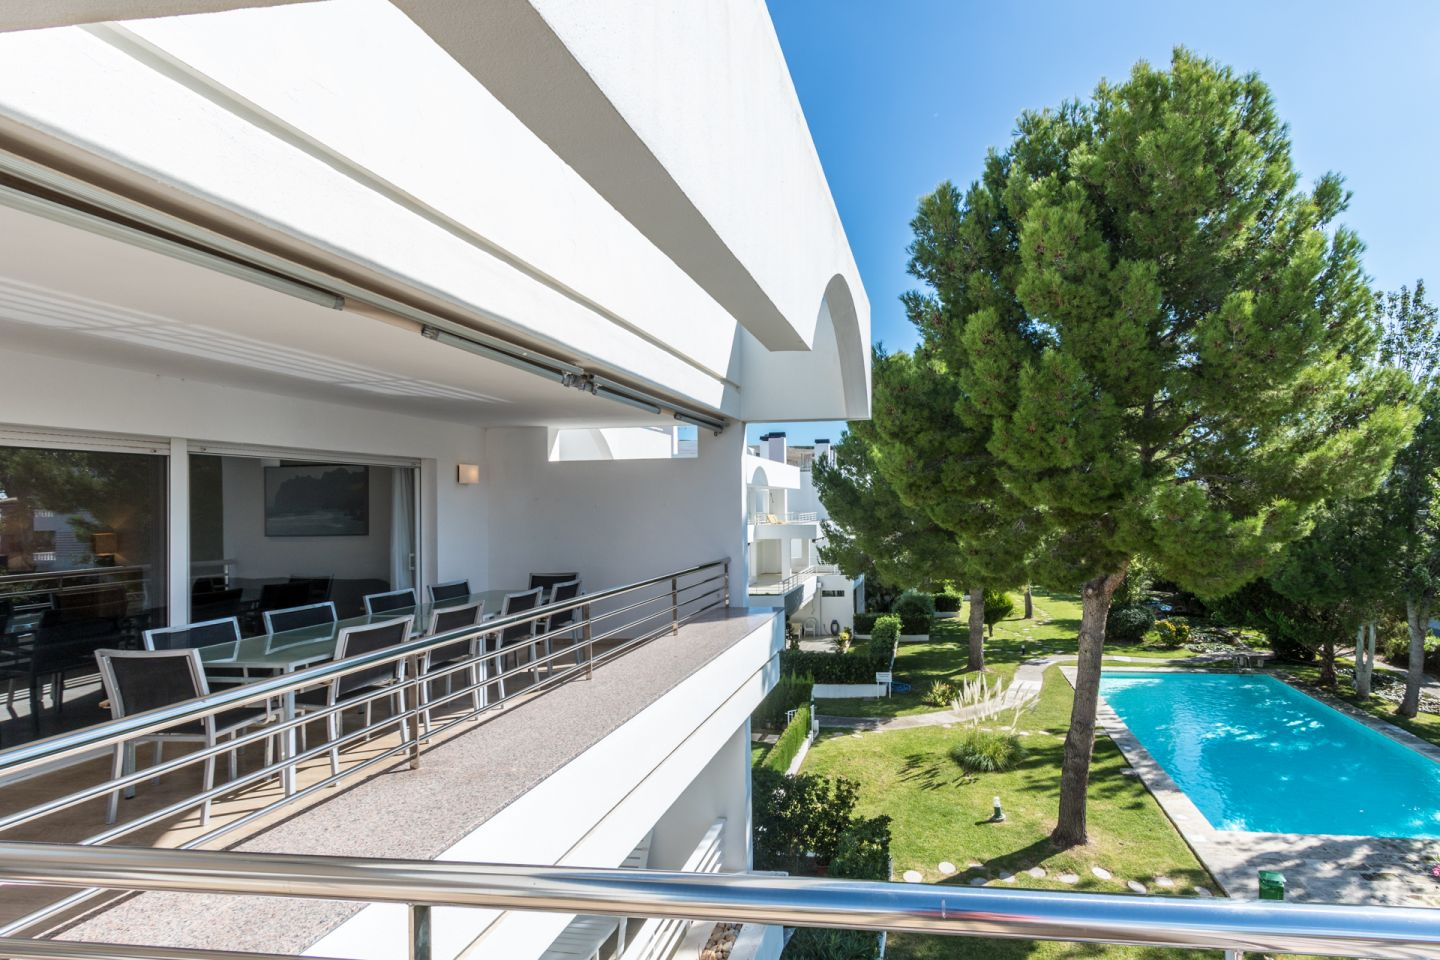 5 Bed Penthouse for sale in PUERTO POLLENSA 0